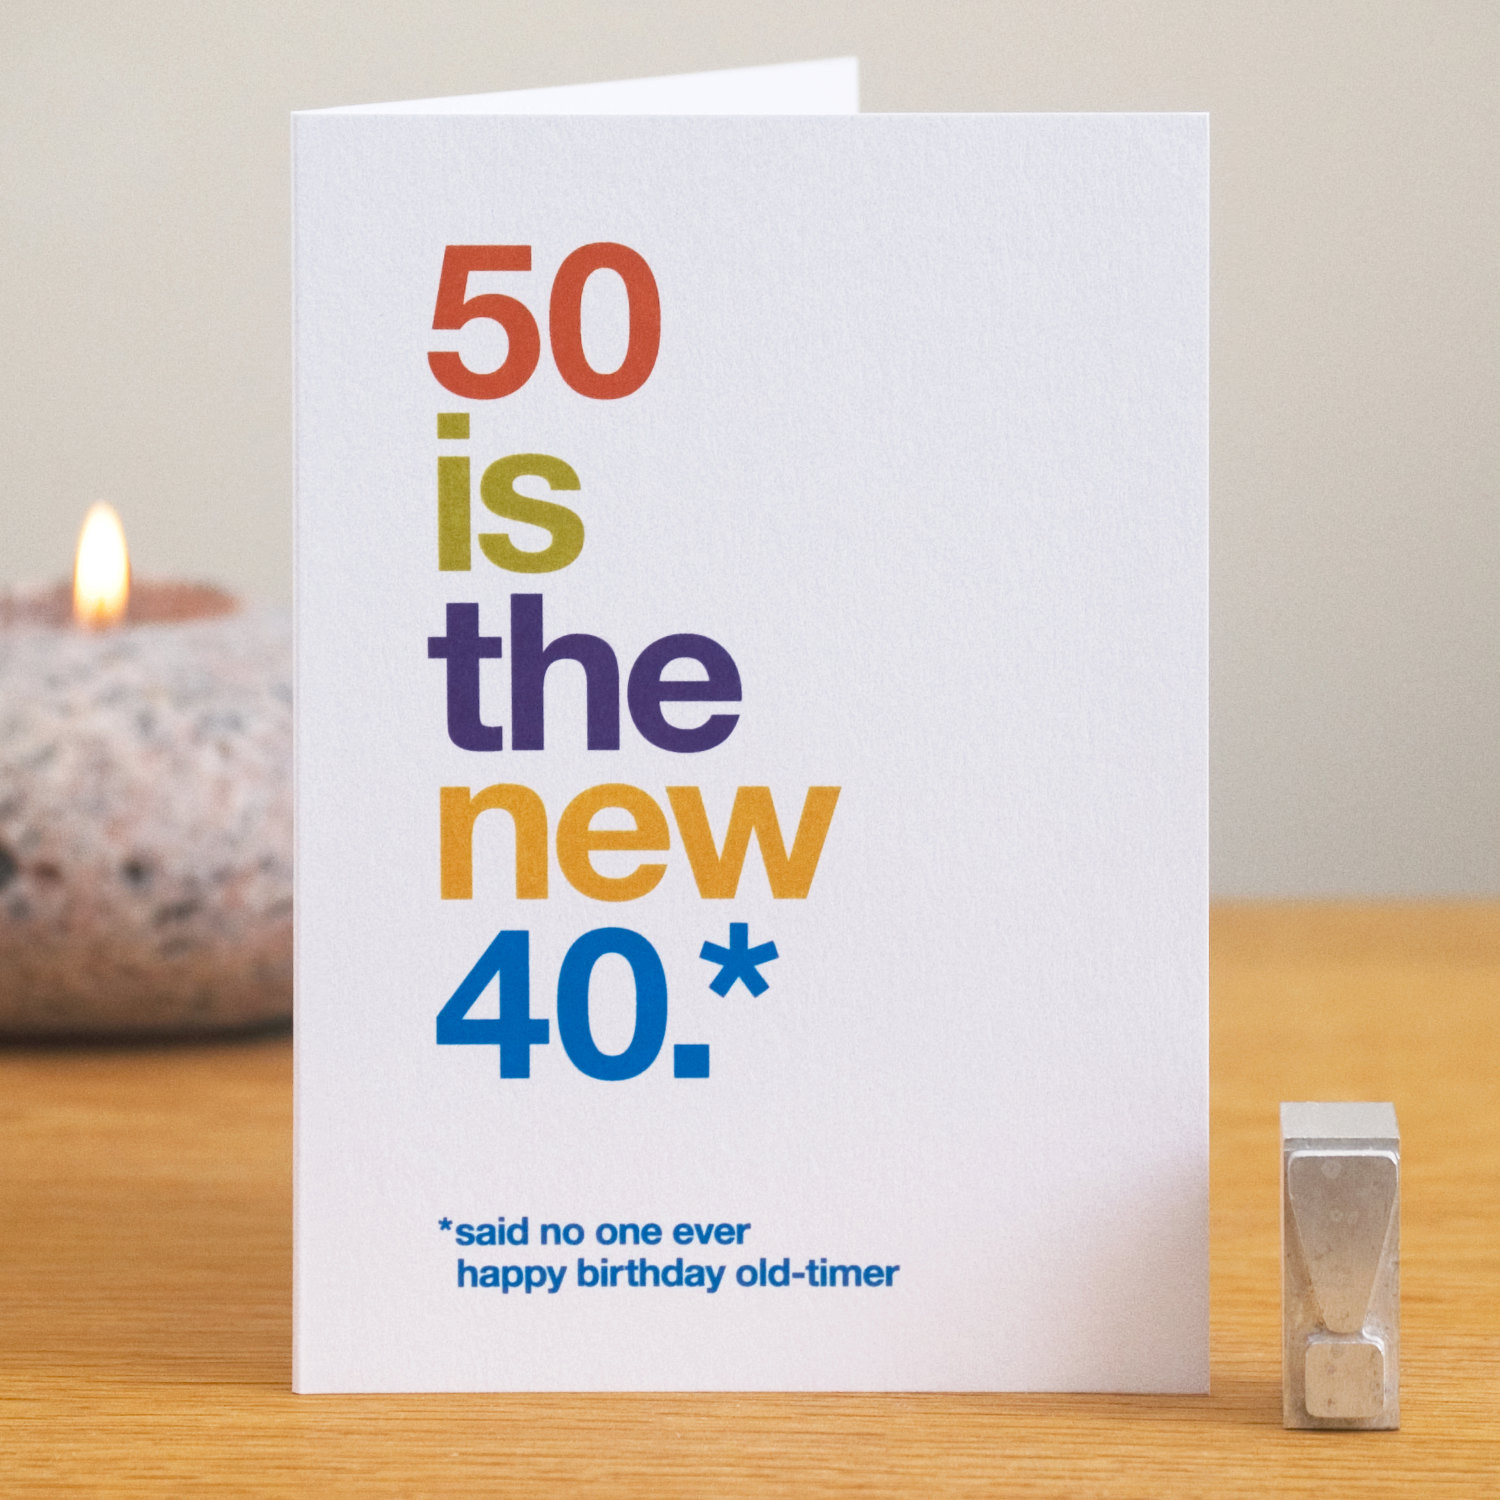 Best ideas about Funny 50th Birthday Cards . Save or Pin Funny 50th Birthday Card 50 Birthday Card 50 Card Card Now.